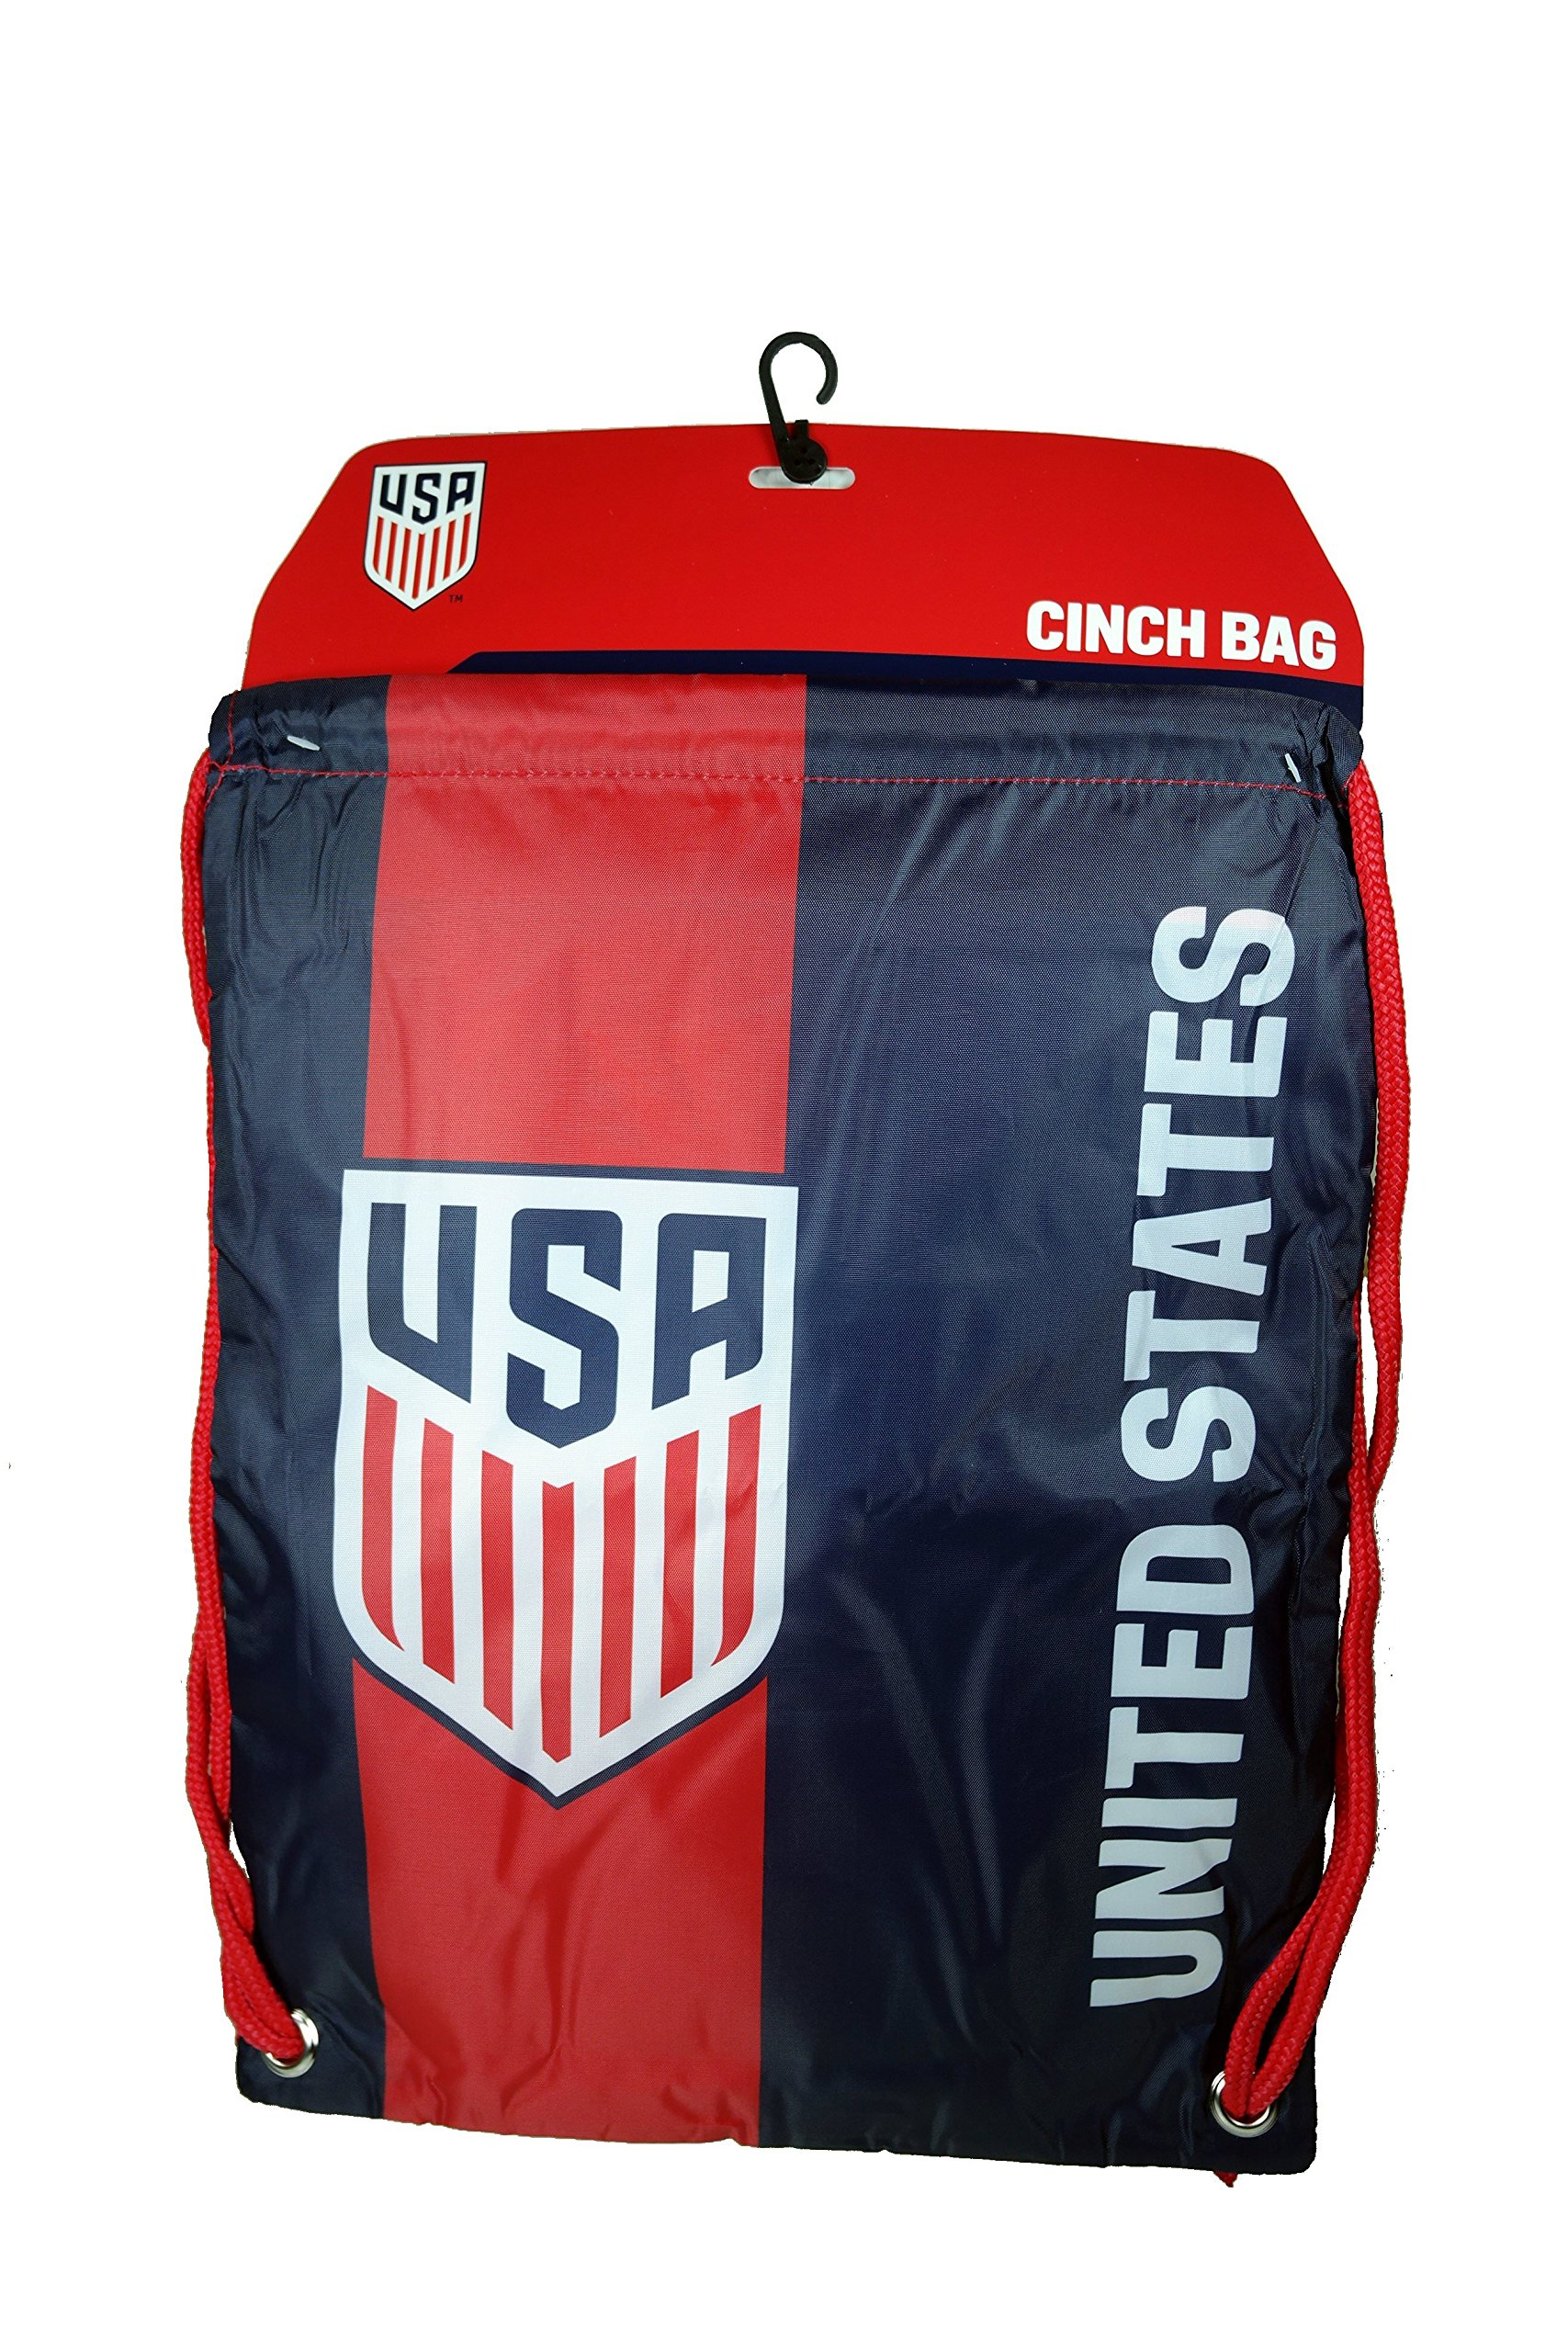 Iconsports US Soccer Authentic Official Licensed Soccer Drawstring Cinch Sack Bag 001